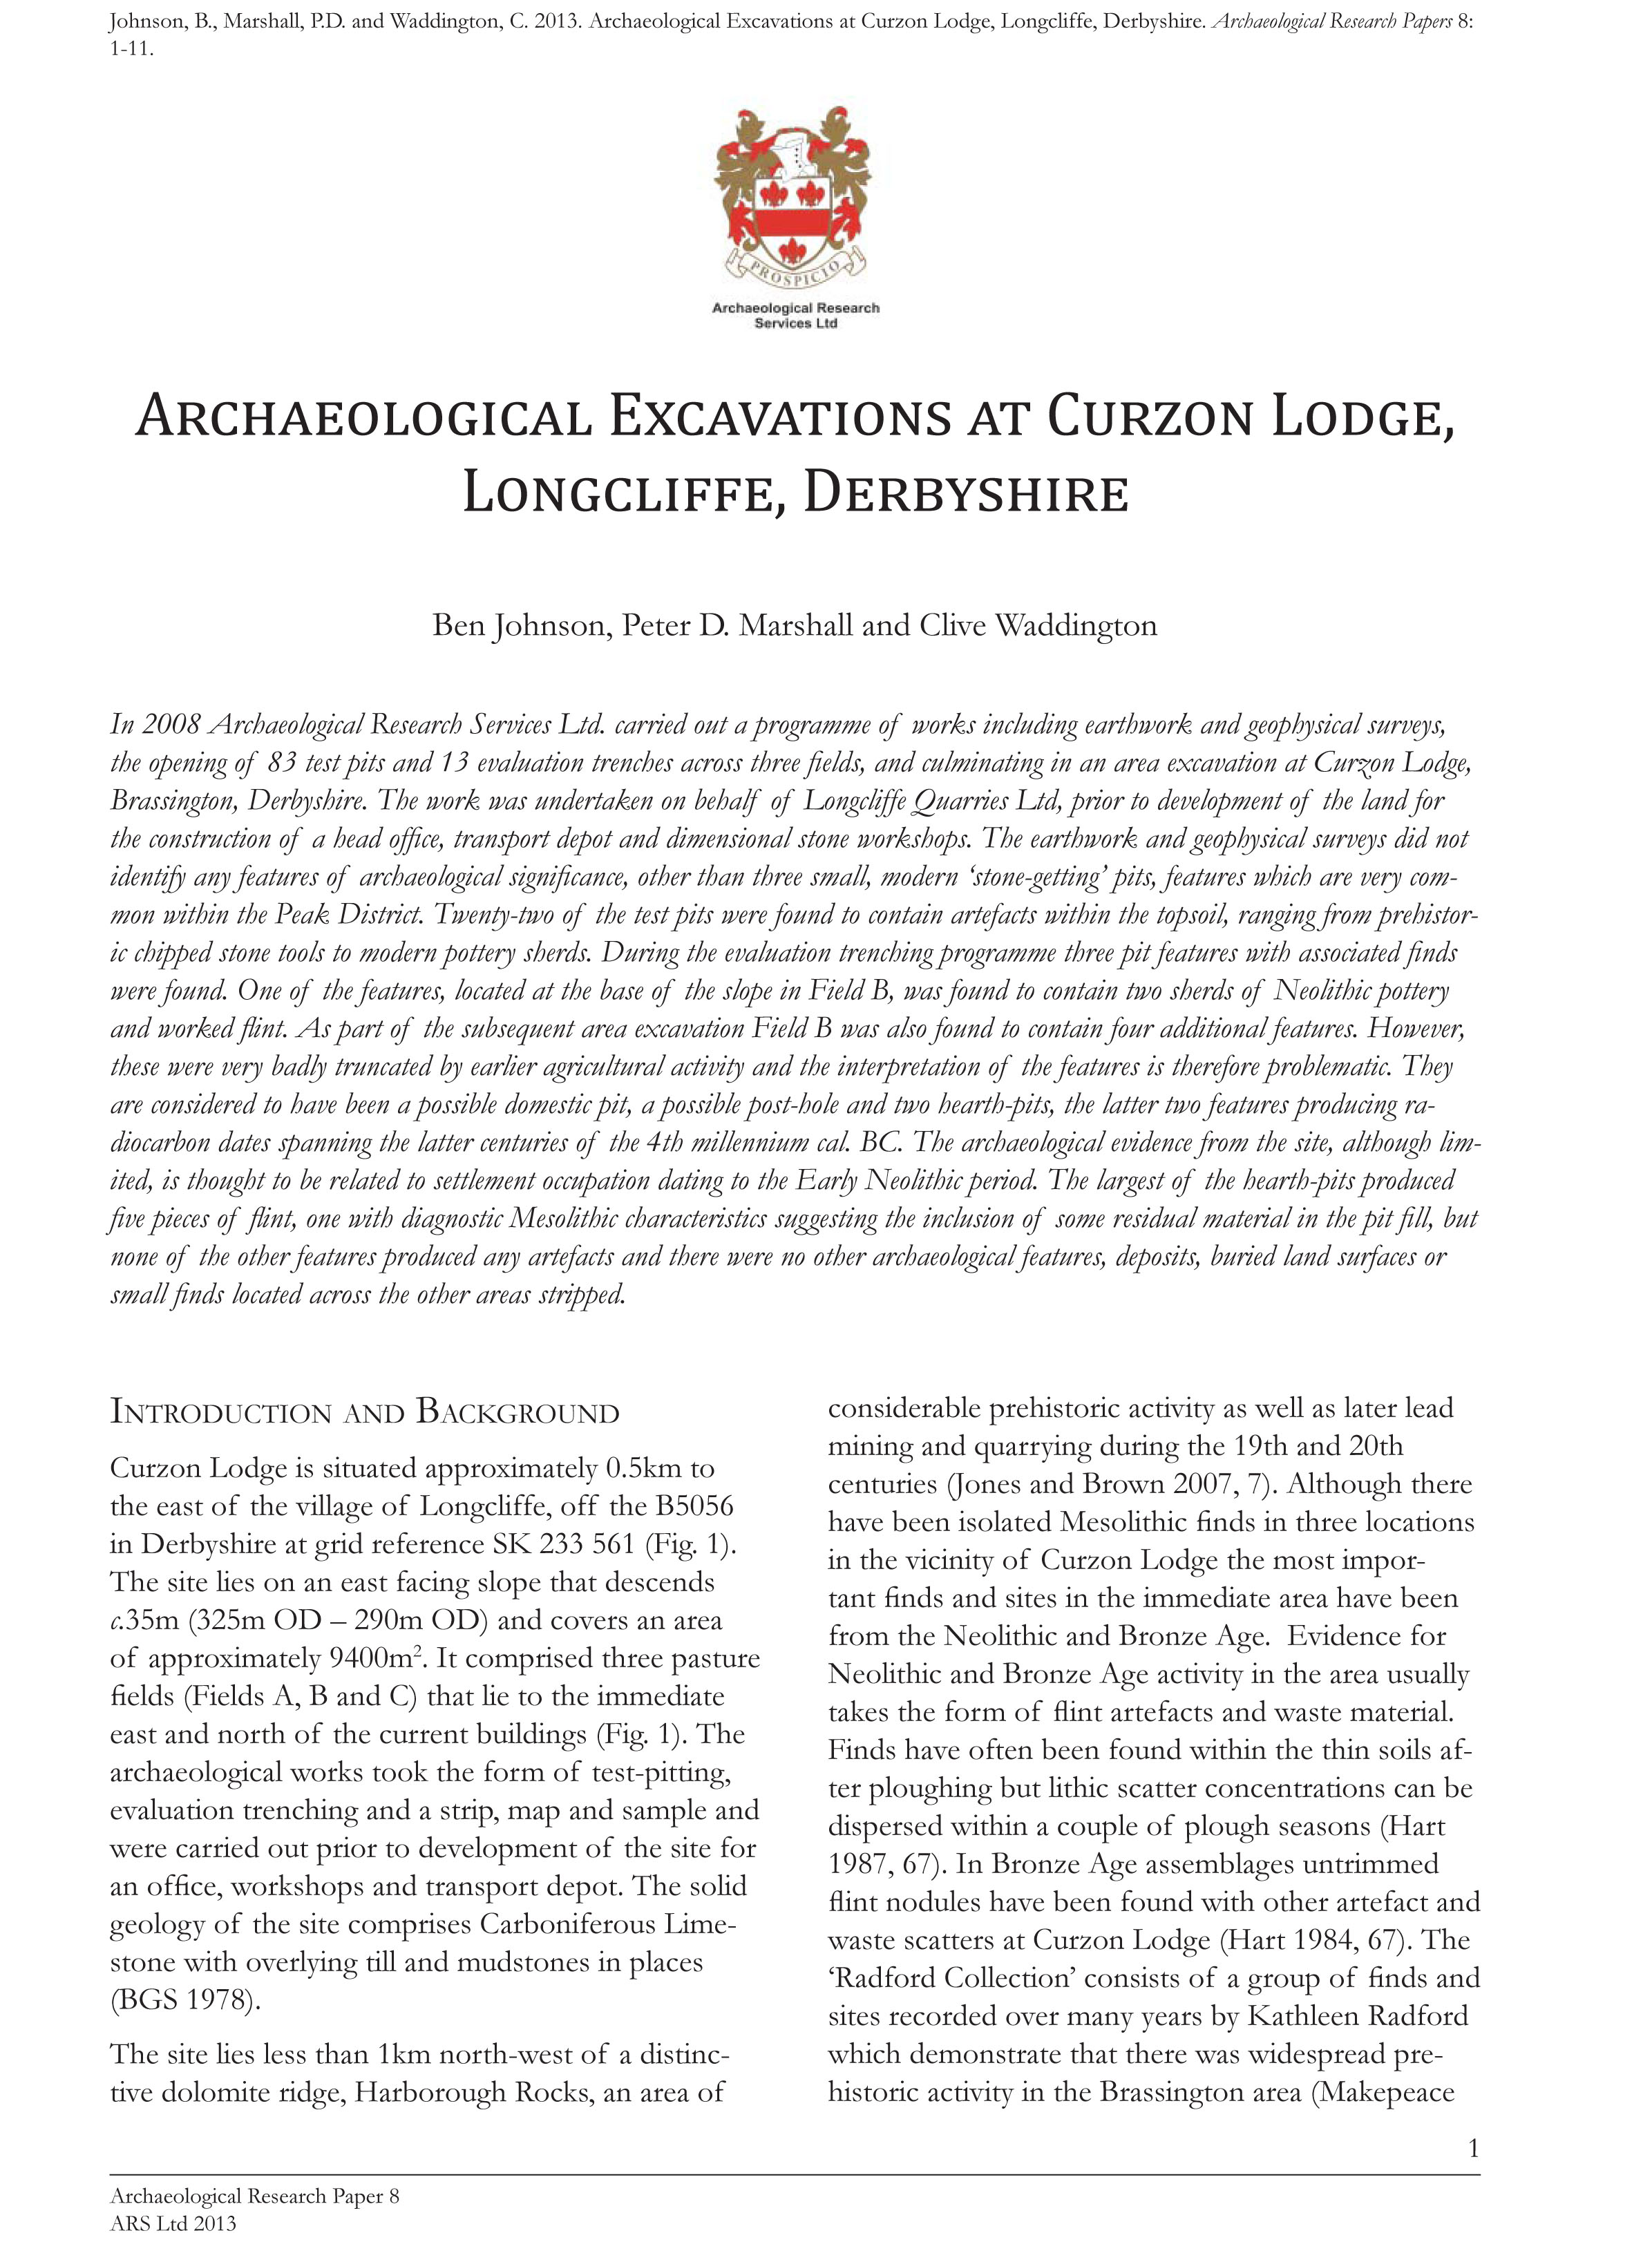 research paper archaeologist